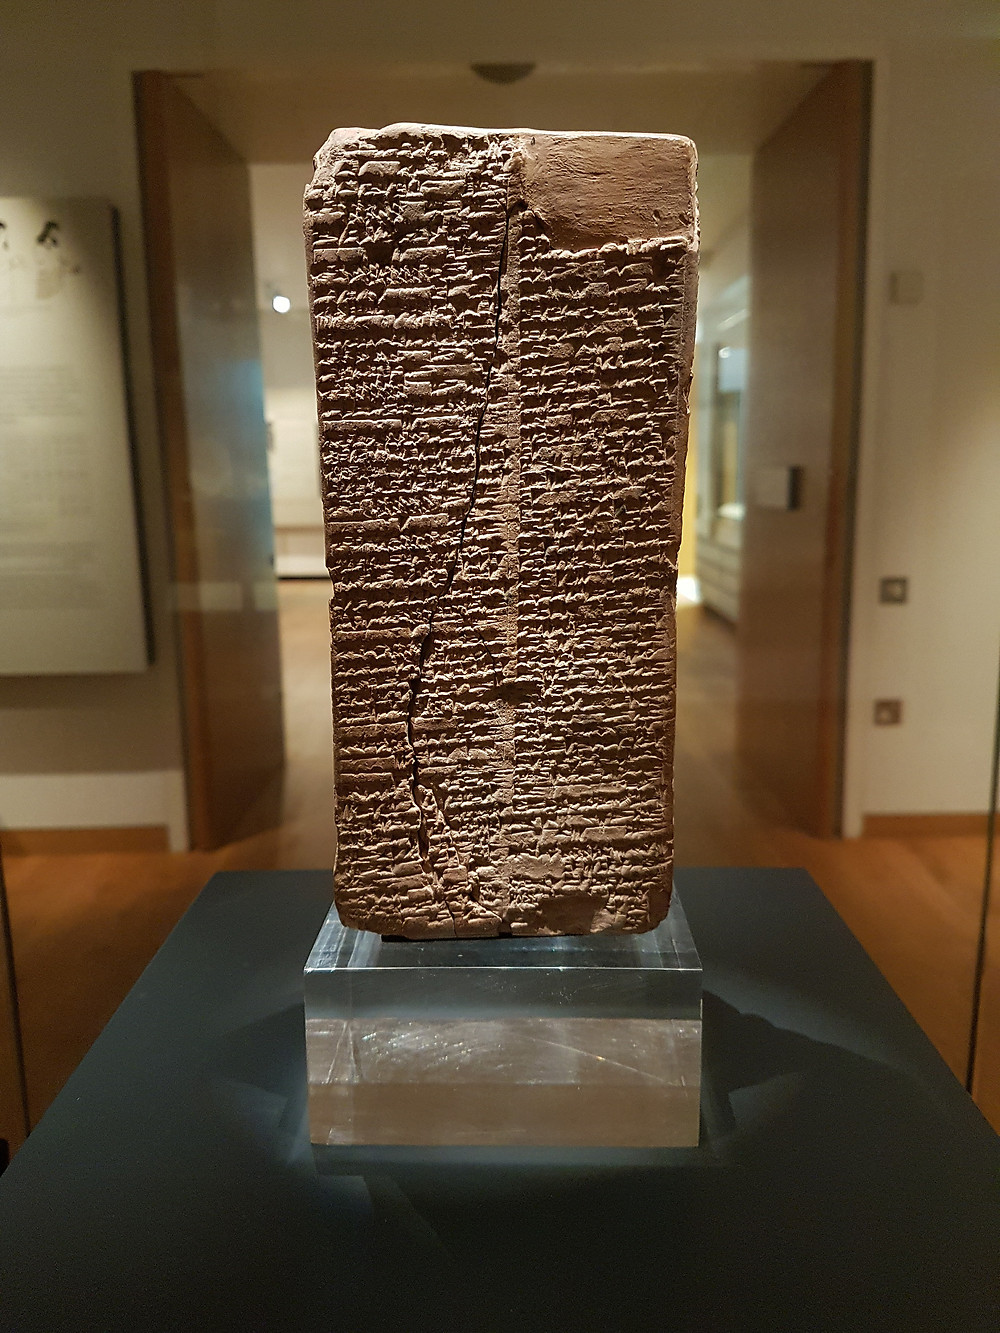 The Sumerian King List (credit: By Gts-tg (Own work) [CC BY-SA 4.0 (https://creativecommons.org/licenses/by-sa/4.0)], via Wikimedia Commons)